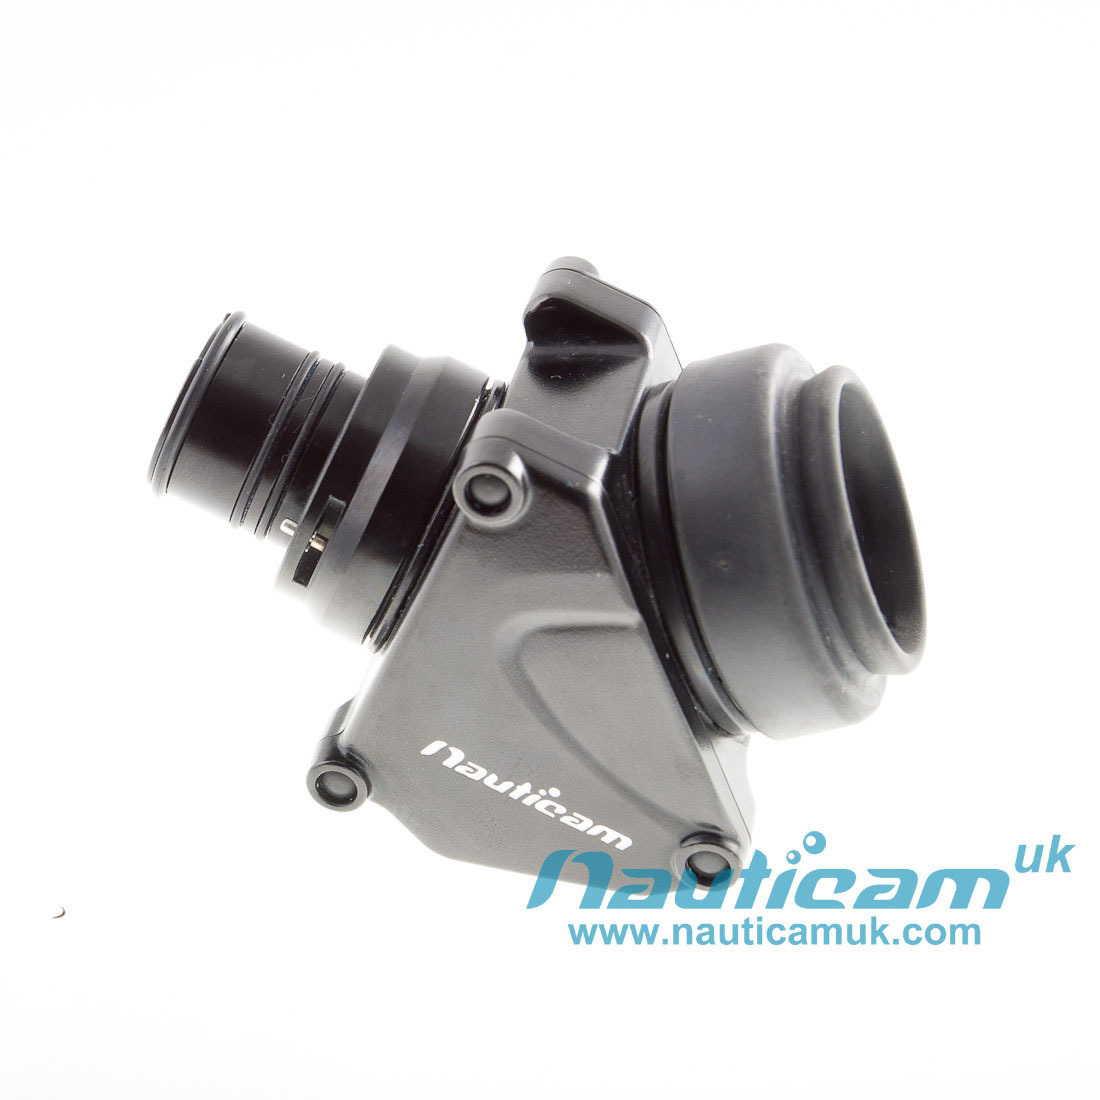 Nauticam enhanced 45 degree viewfinder